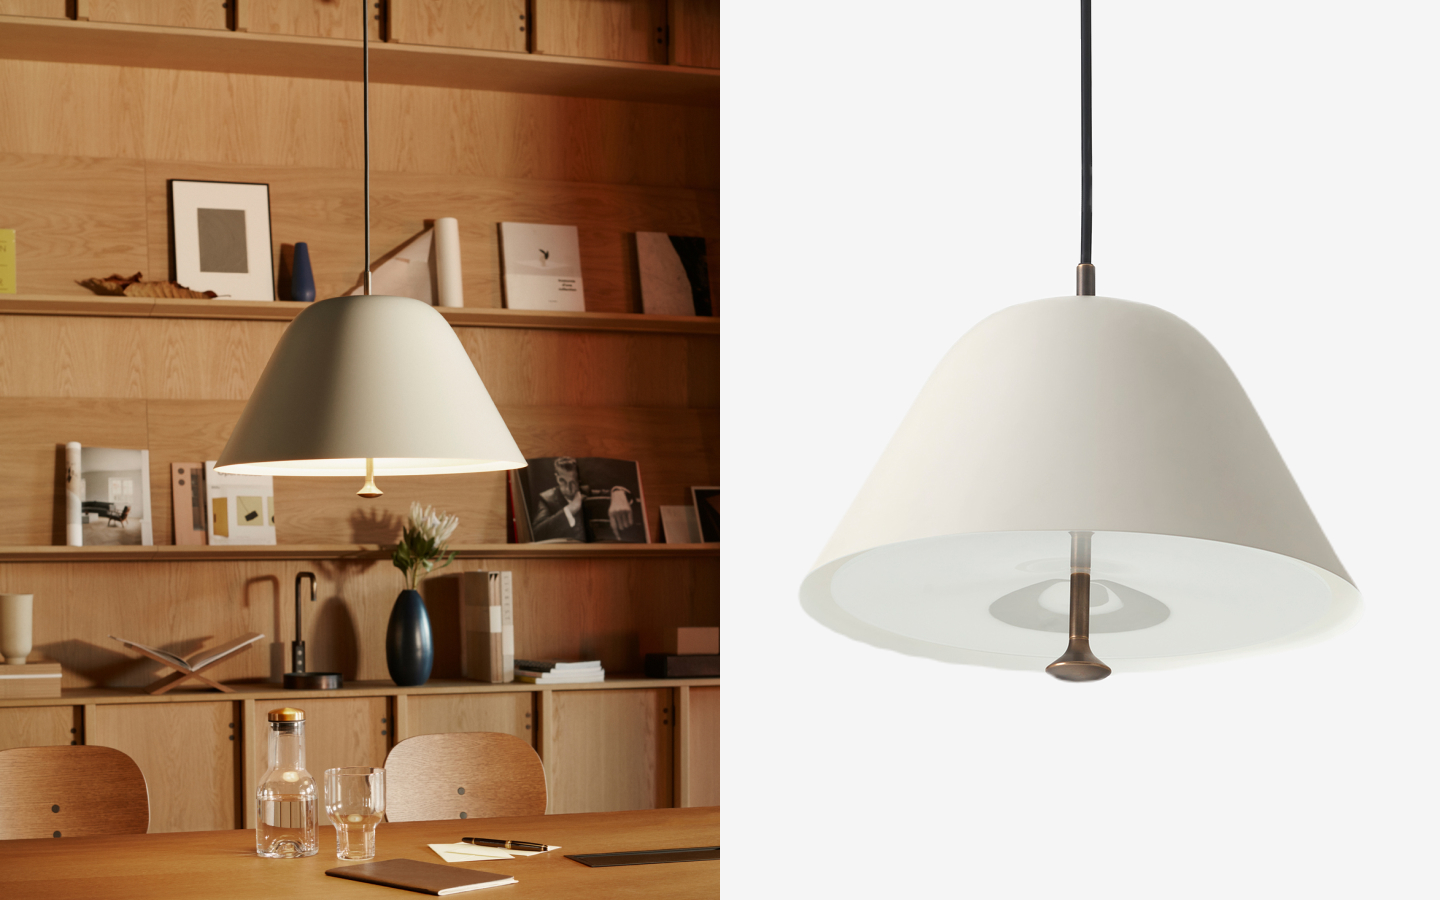 Offwhite metal pendant with brass detail and black cord